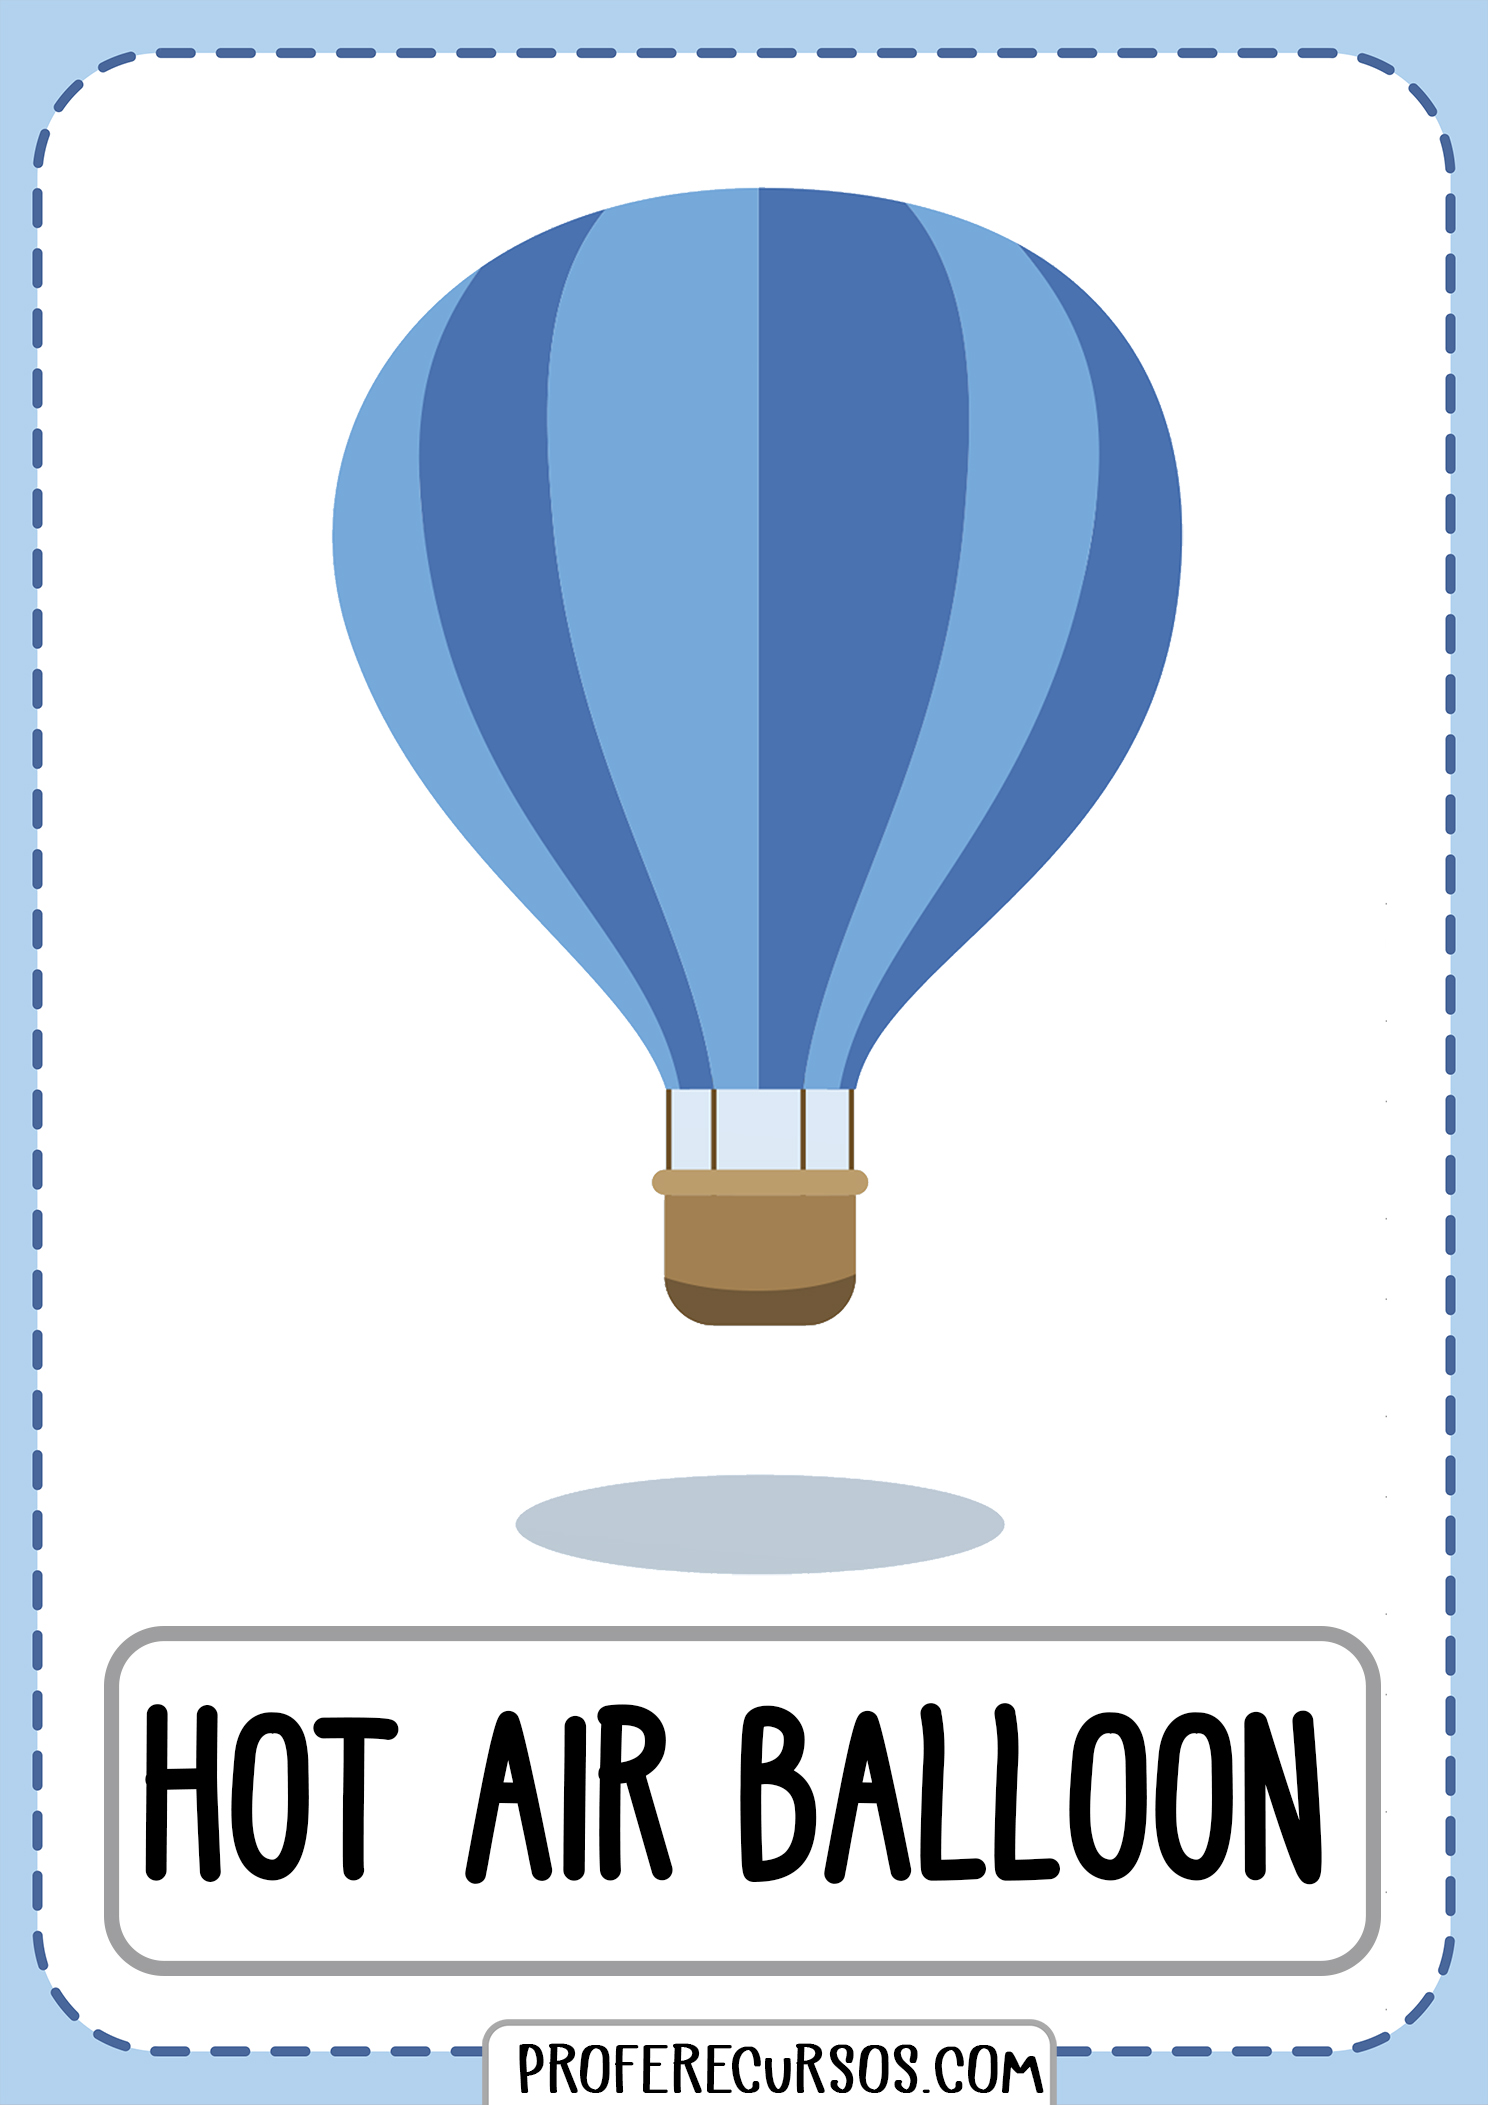 Means-of-transport-vocabulary-hot-air-balloon